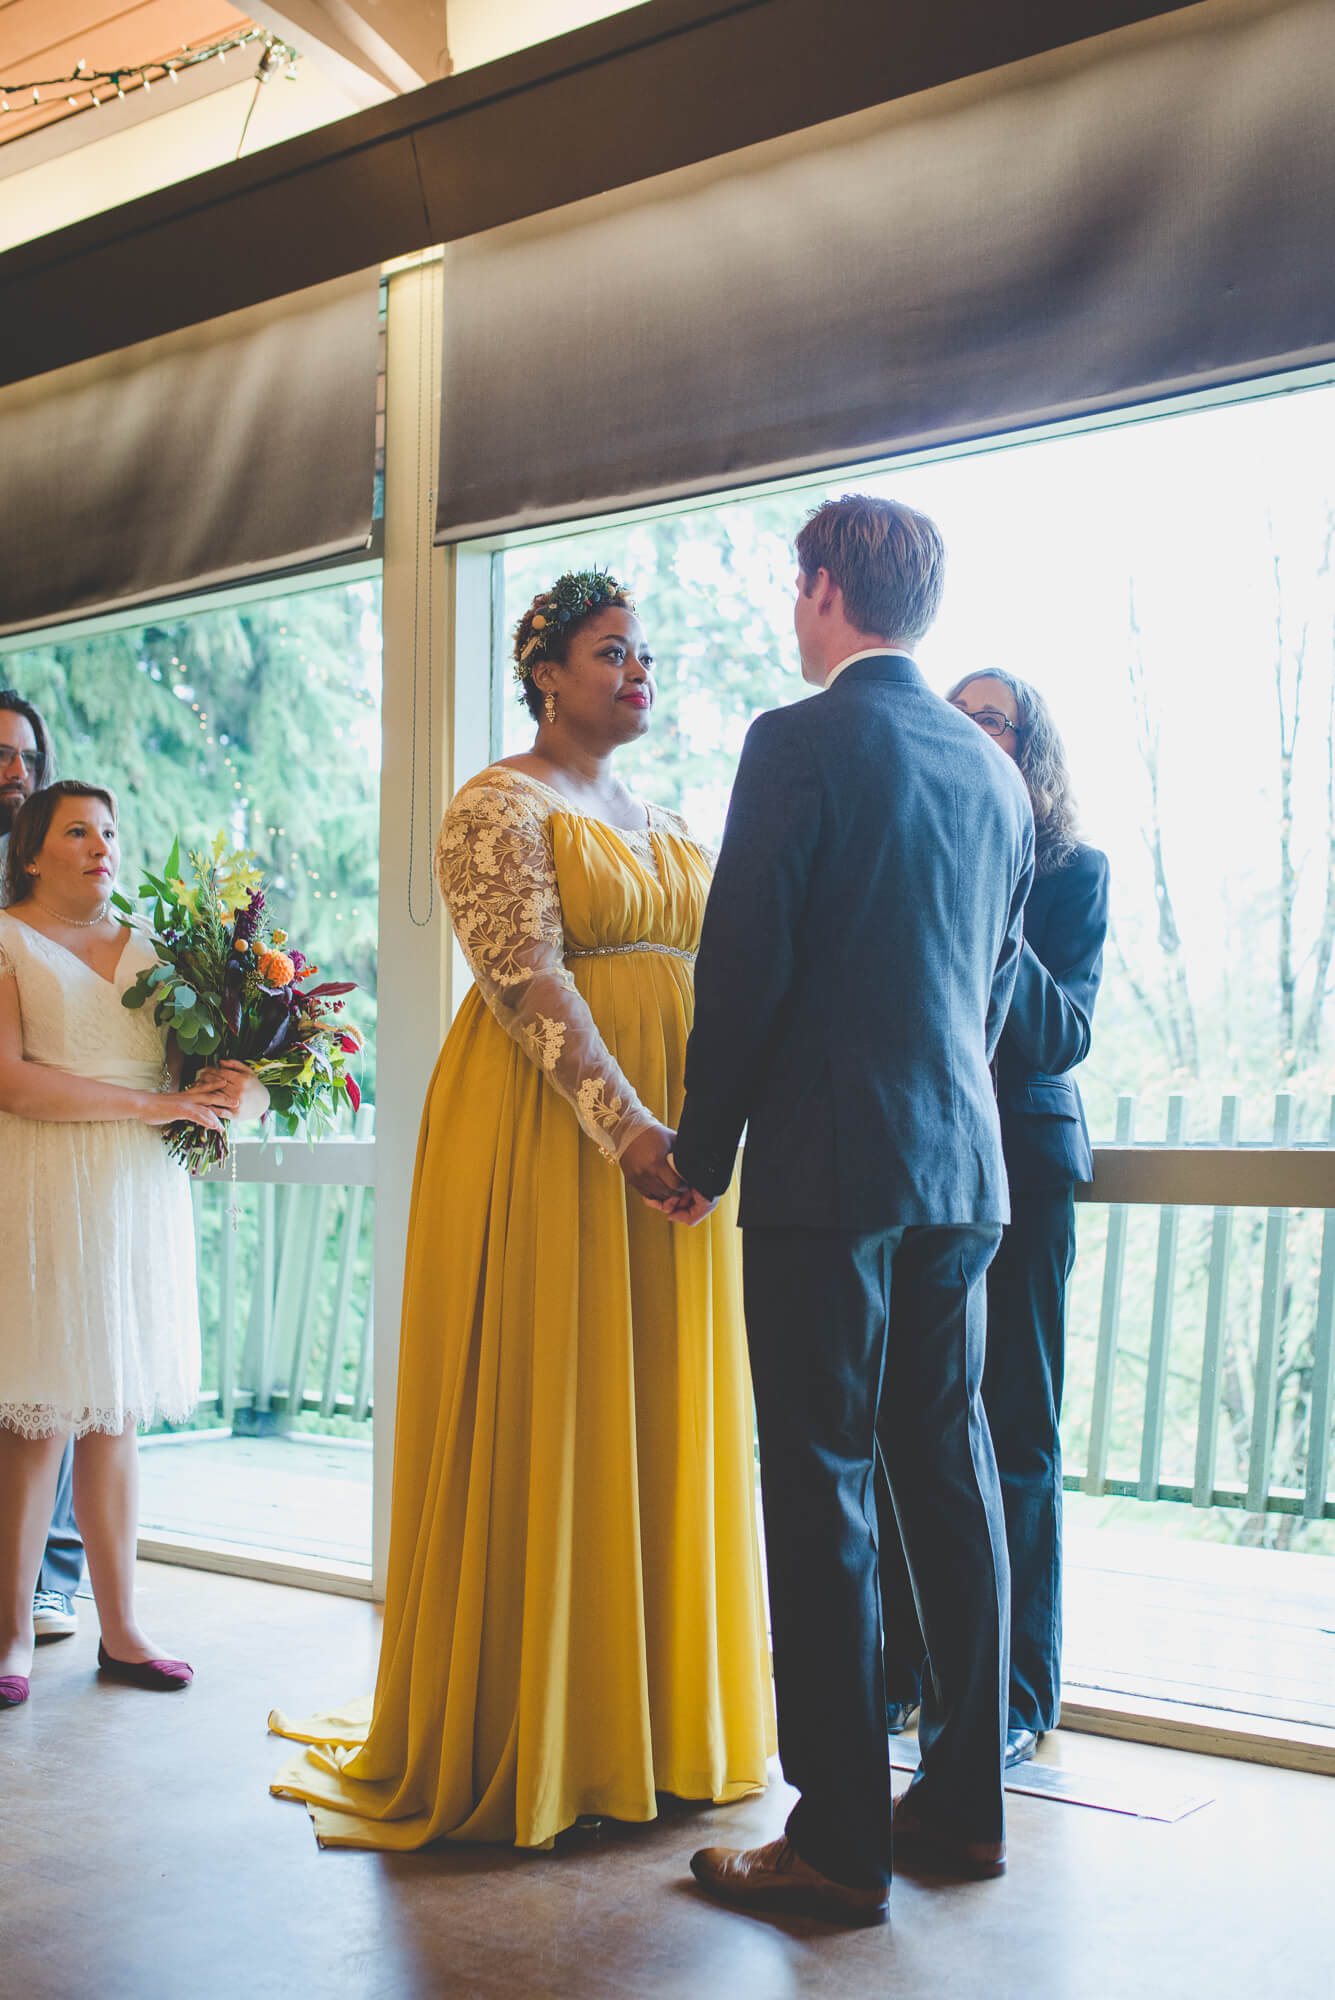 bride in flowing yellow wedding dress with lace sleeves and succulent headpiece during wedding ceremony